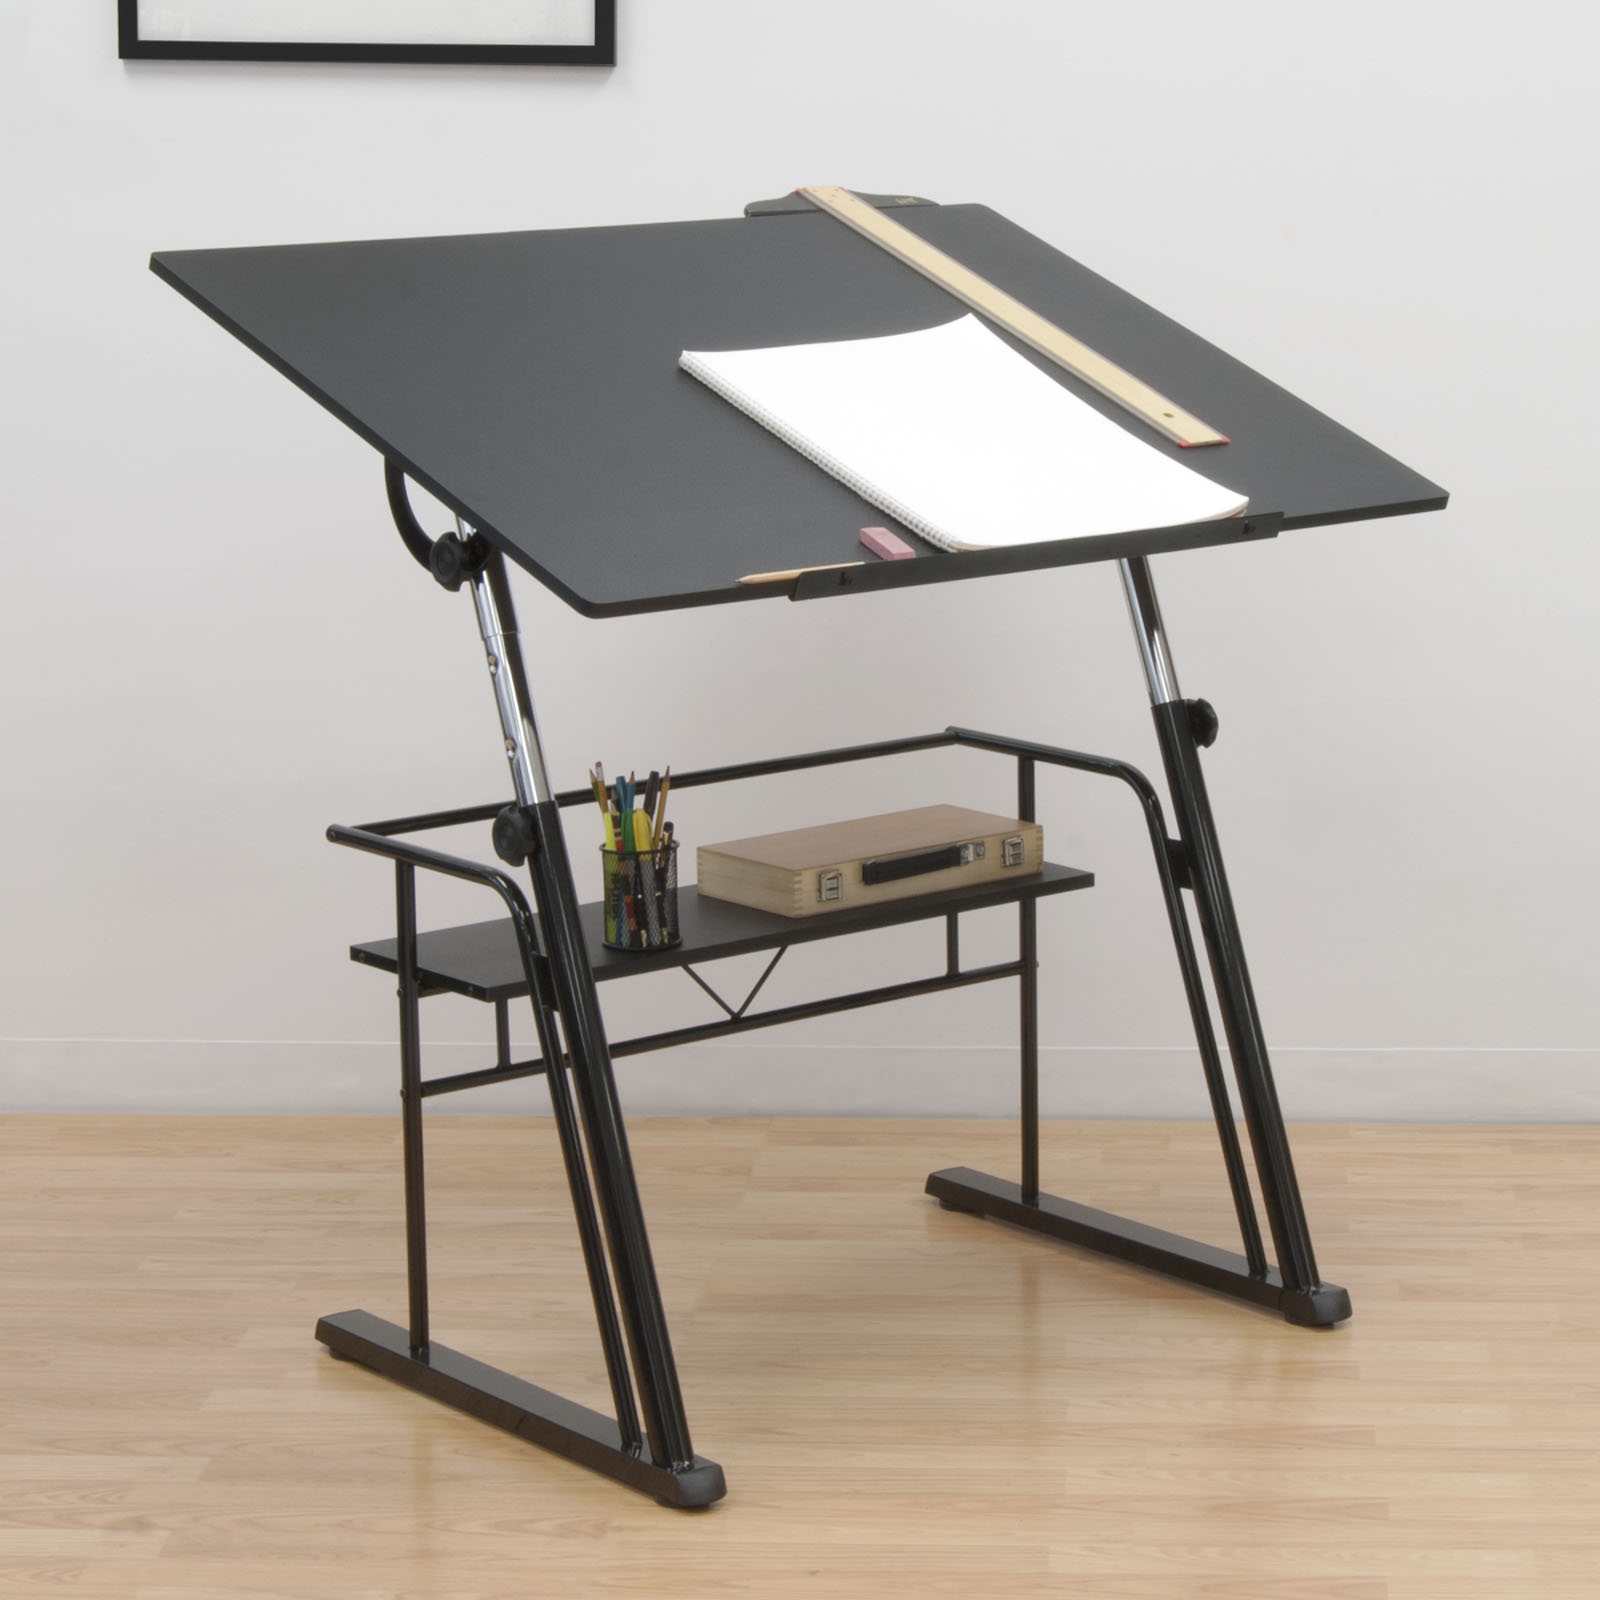 Drafting Table Design Zenith Height Adjustable Drafting Table With Shelf In